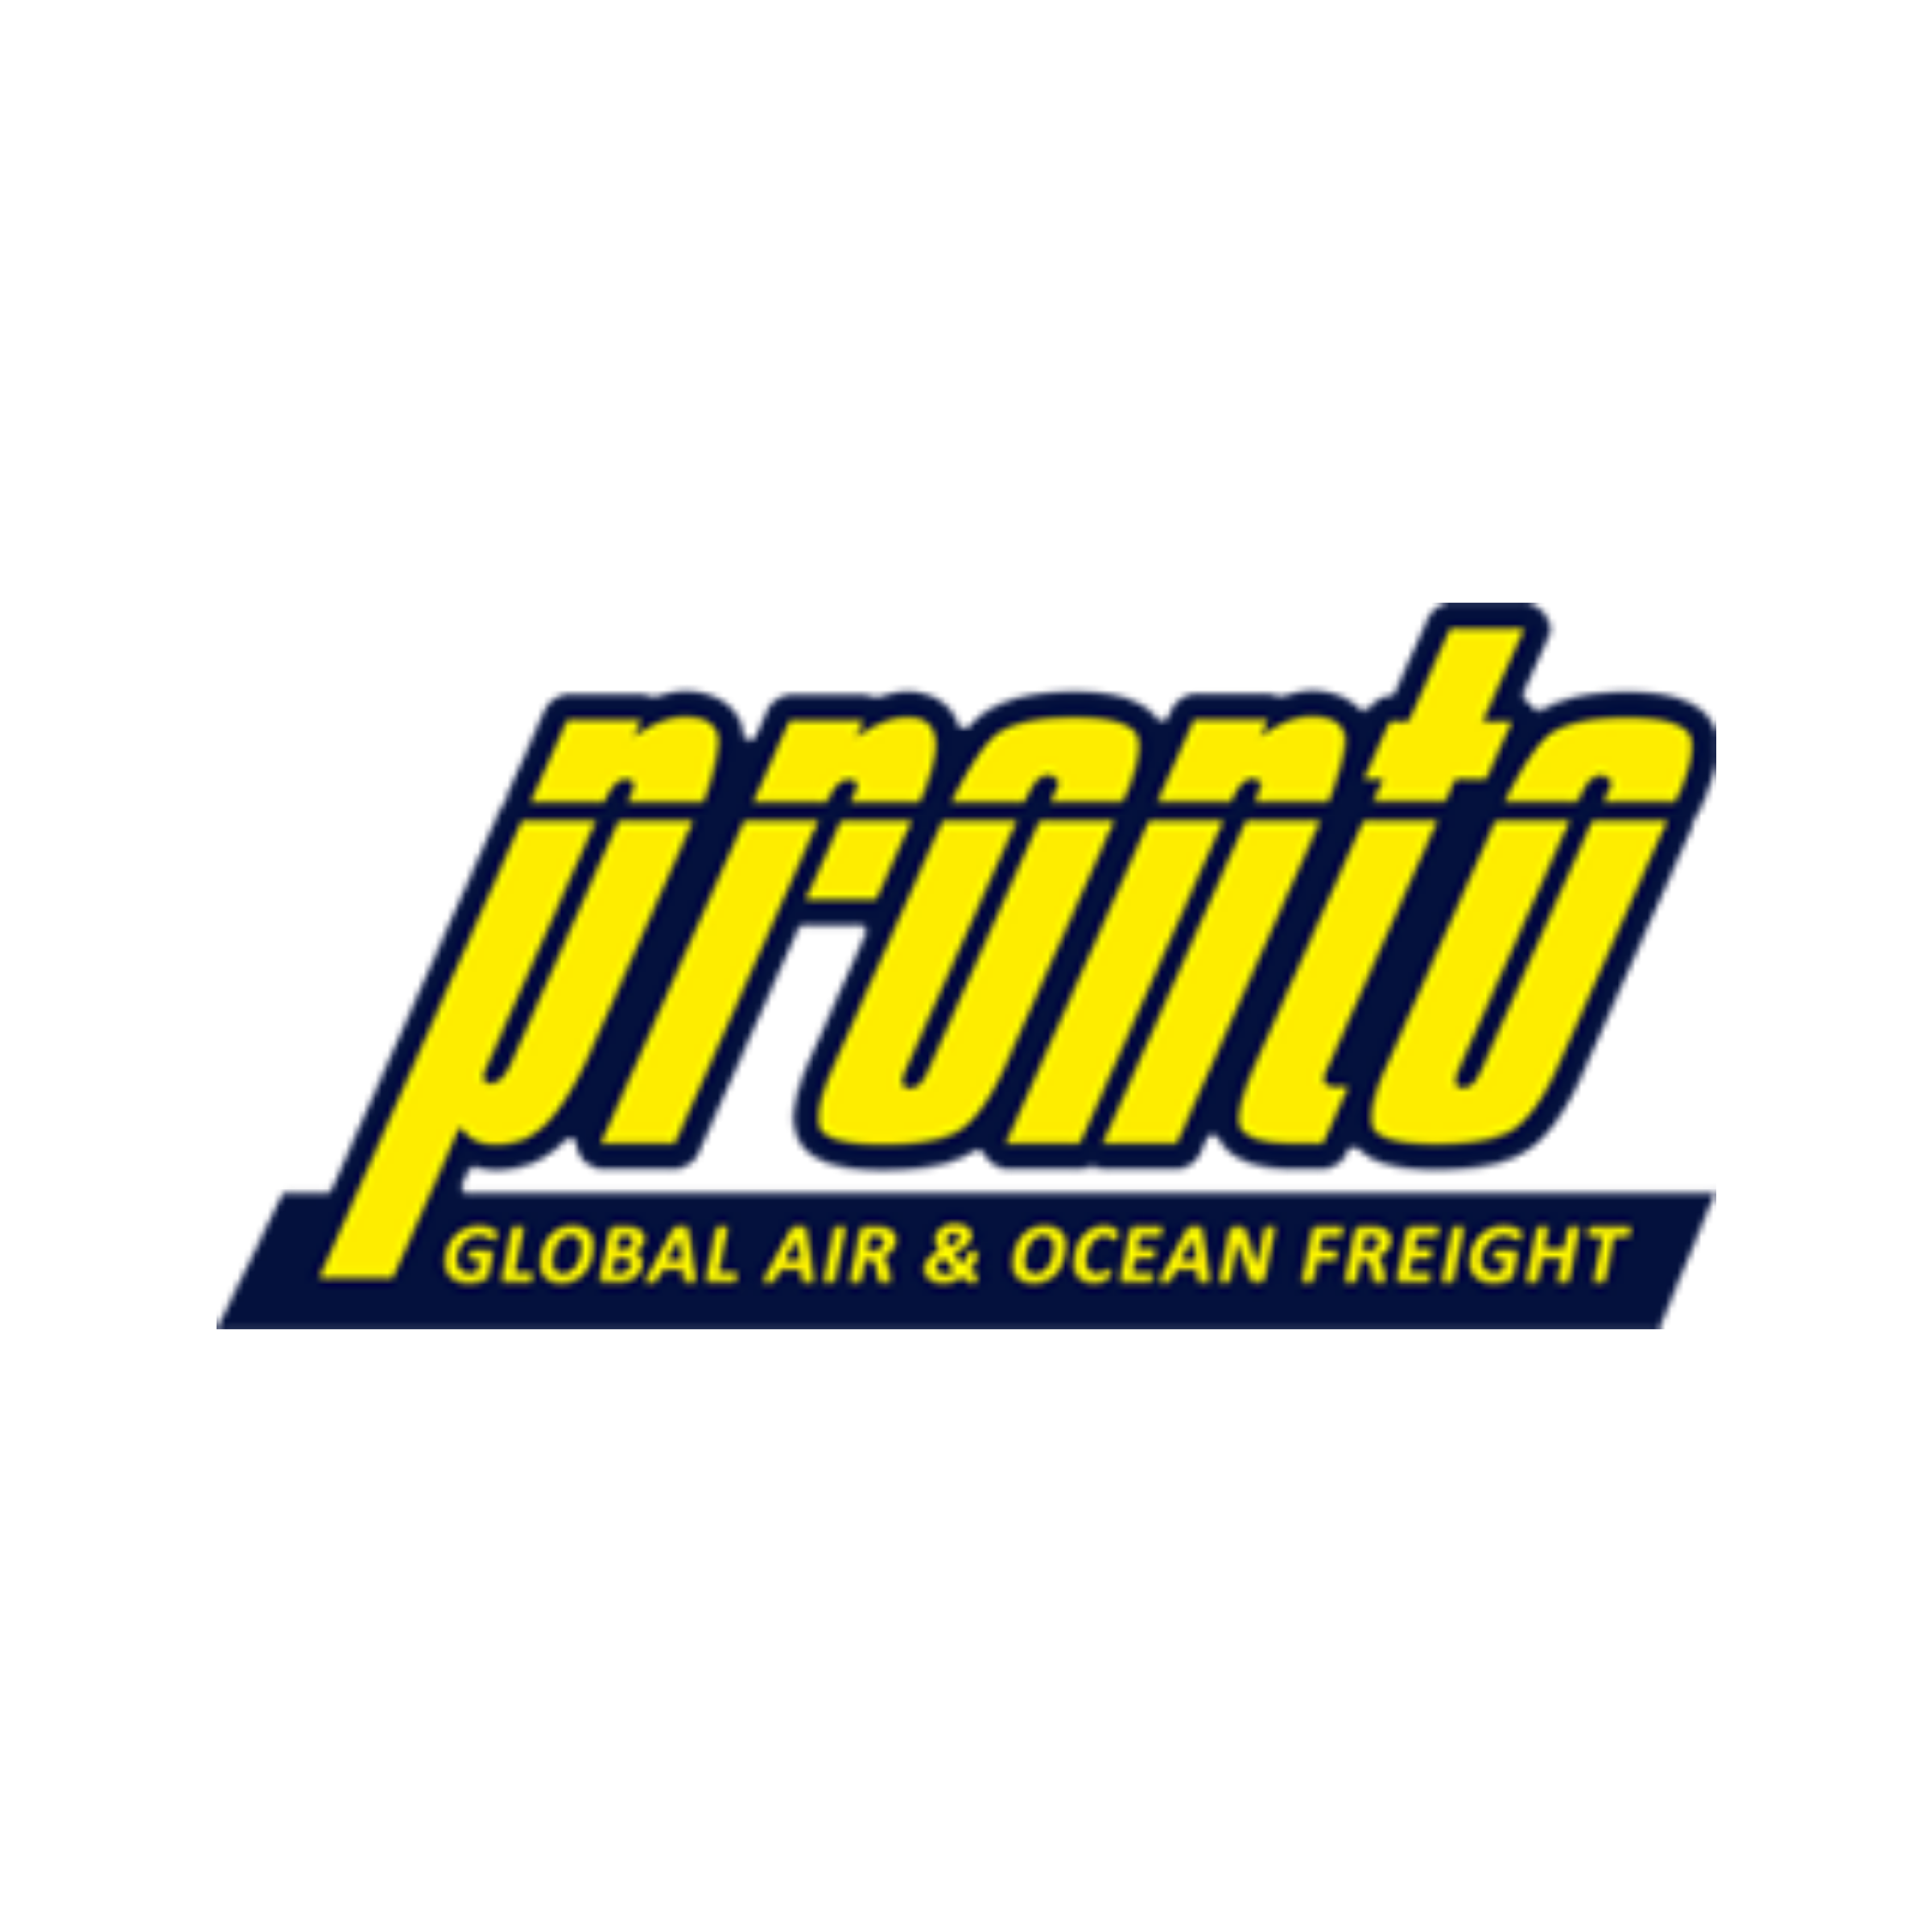 Pronto Global Air & Ocean Freight